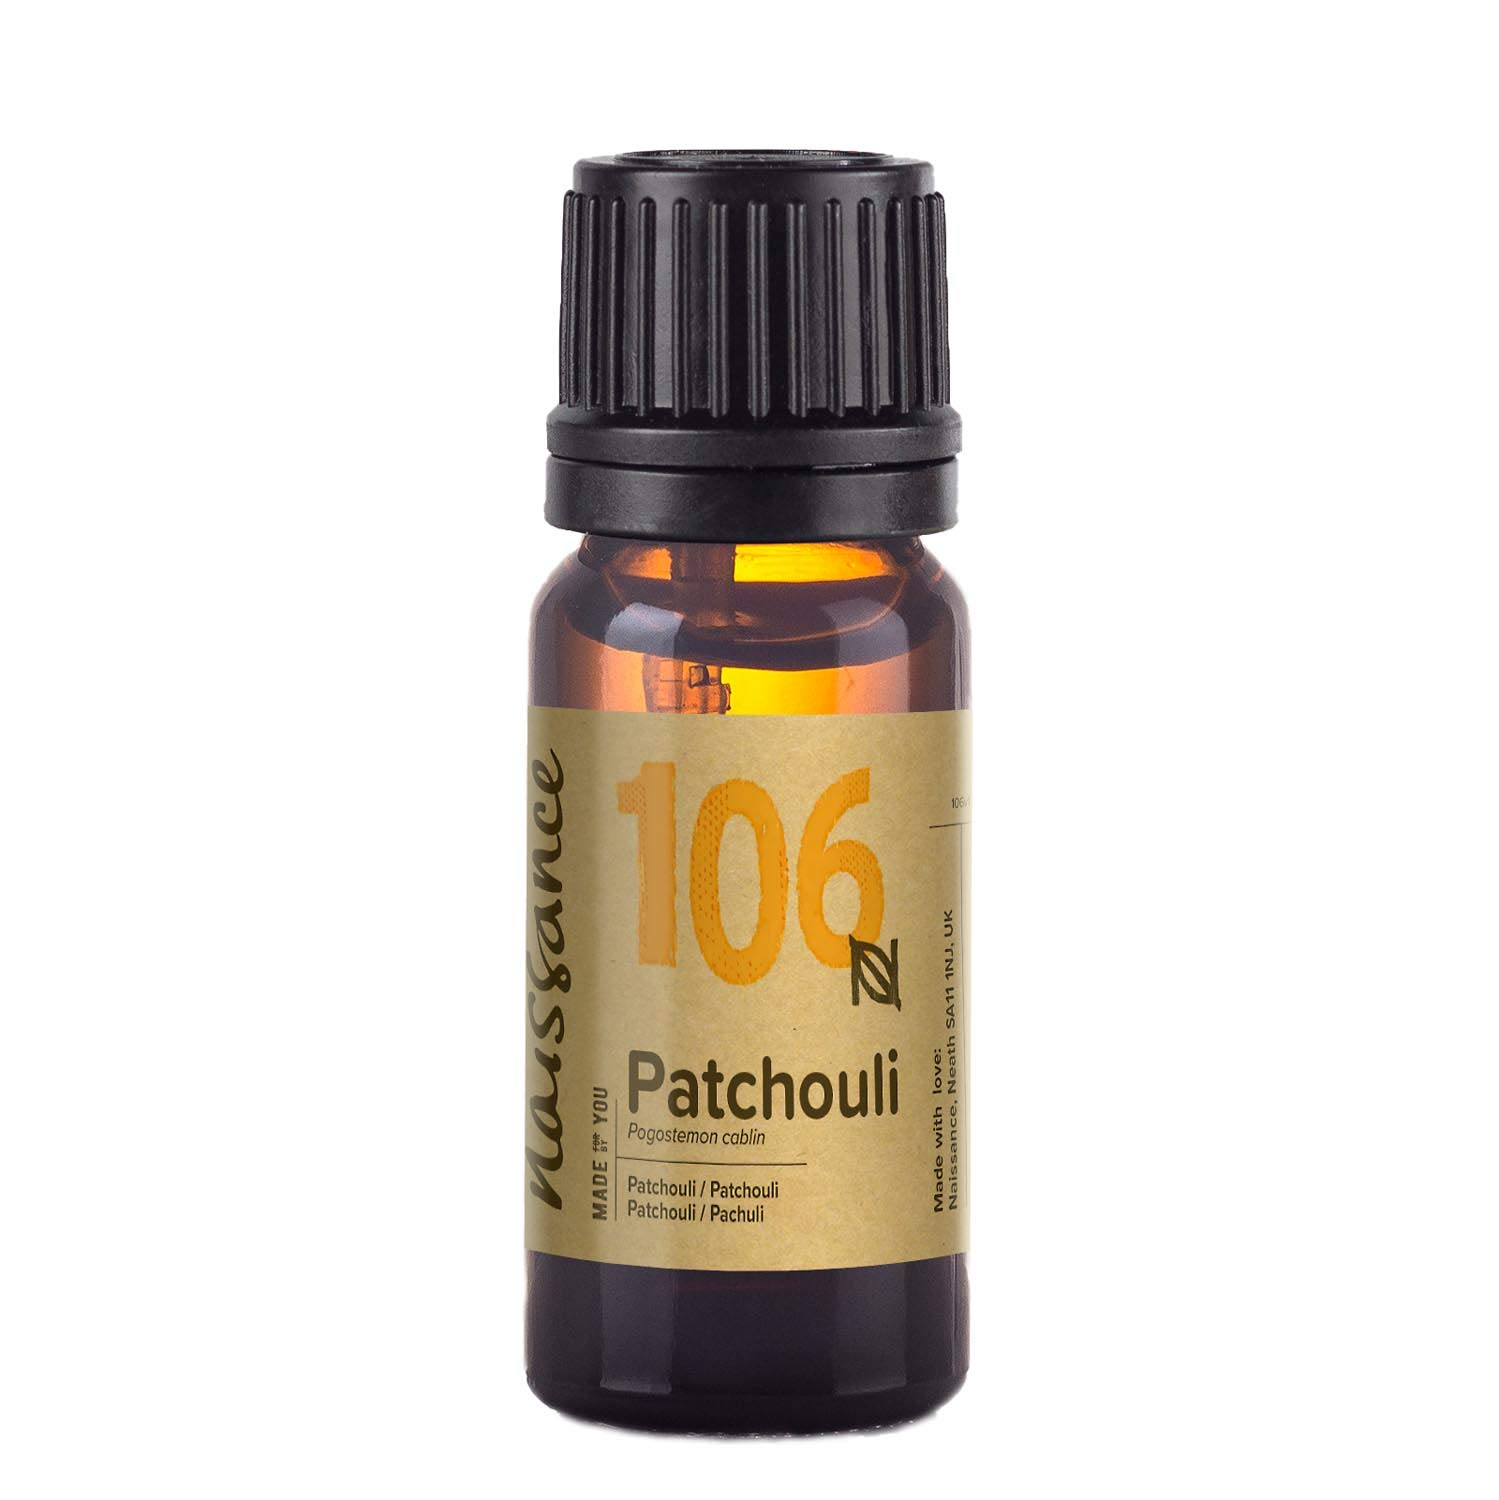 Naissance Patchouli Essential Oil (no. 106) 10ml - Pure, Natural, Cruelty Free, Vegan and Undiluted - To use in Aromatherapy & Diffusers